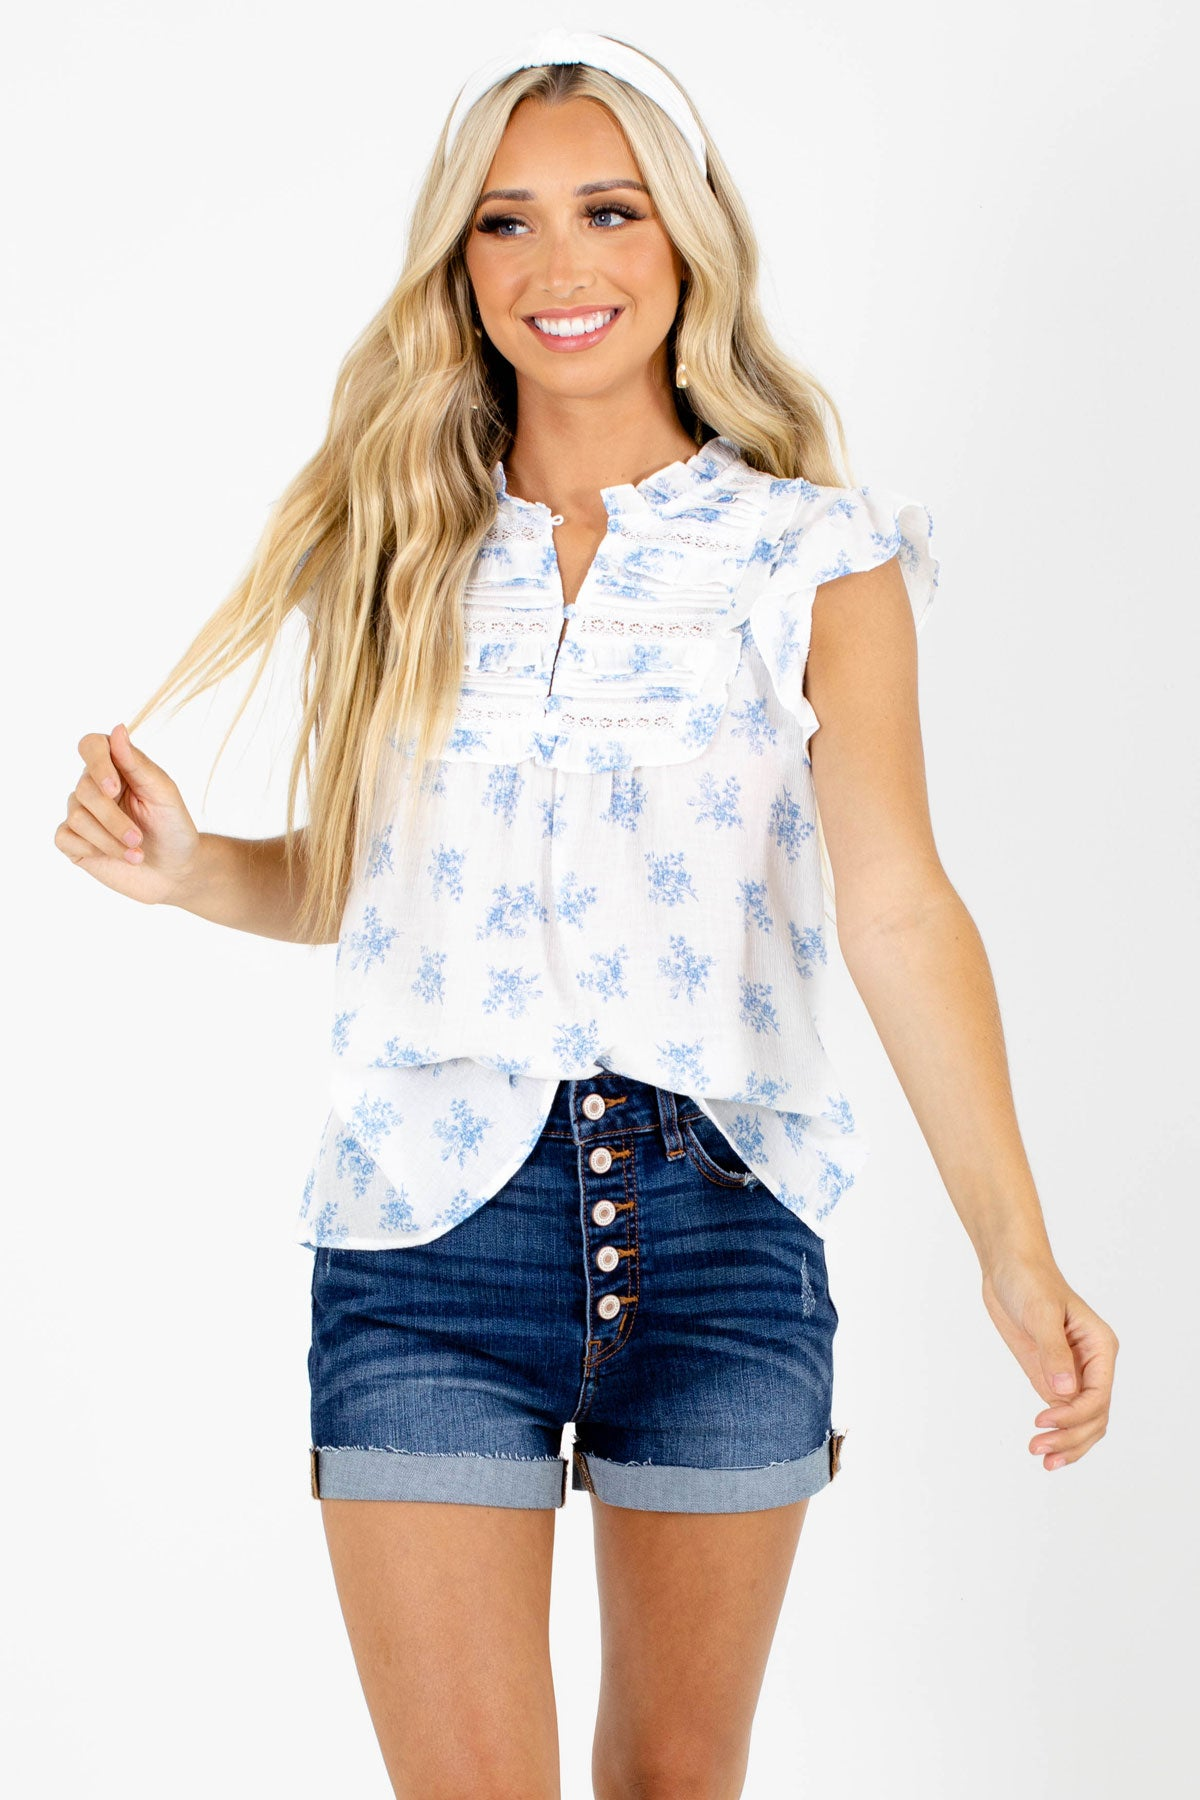 Blue and White Floral Patterned Boutique Blouses for Women